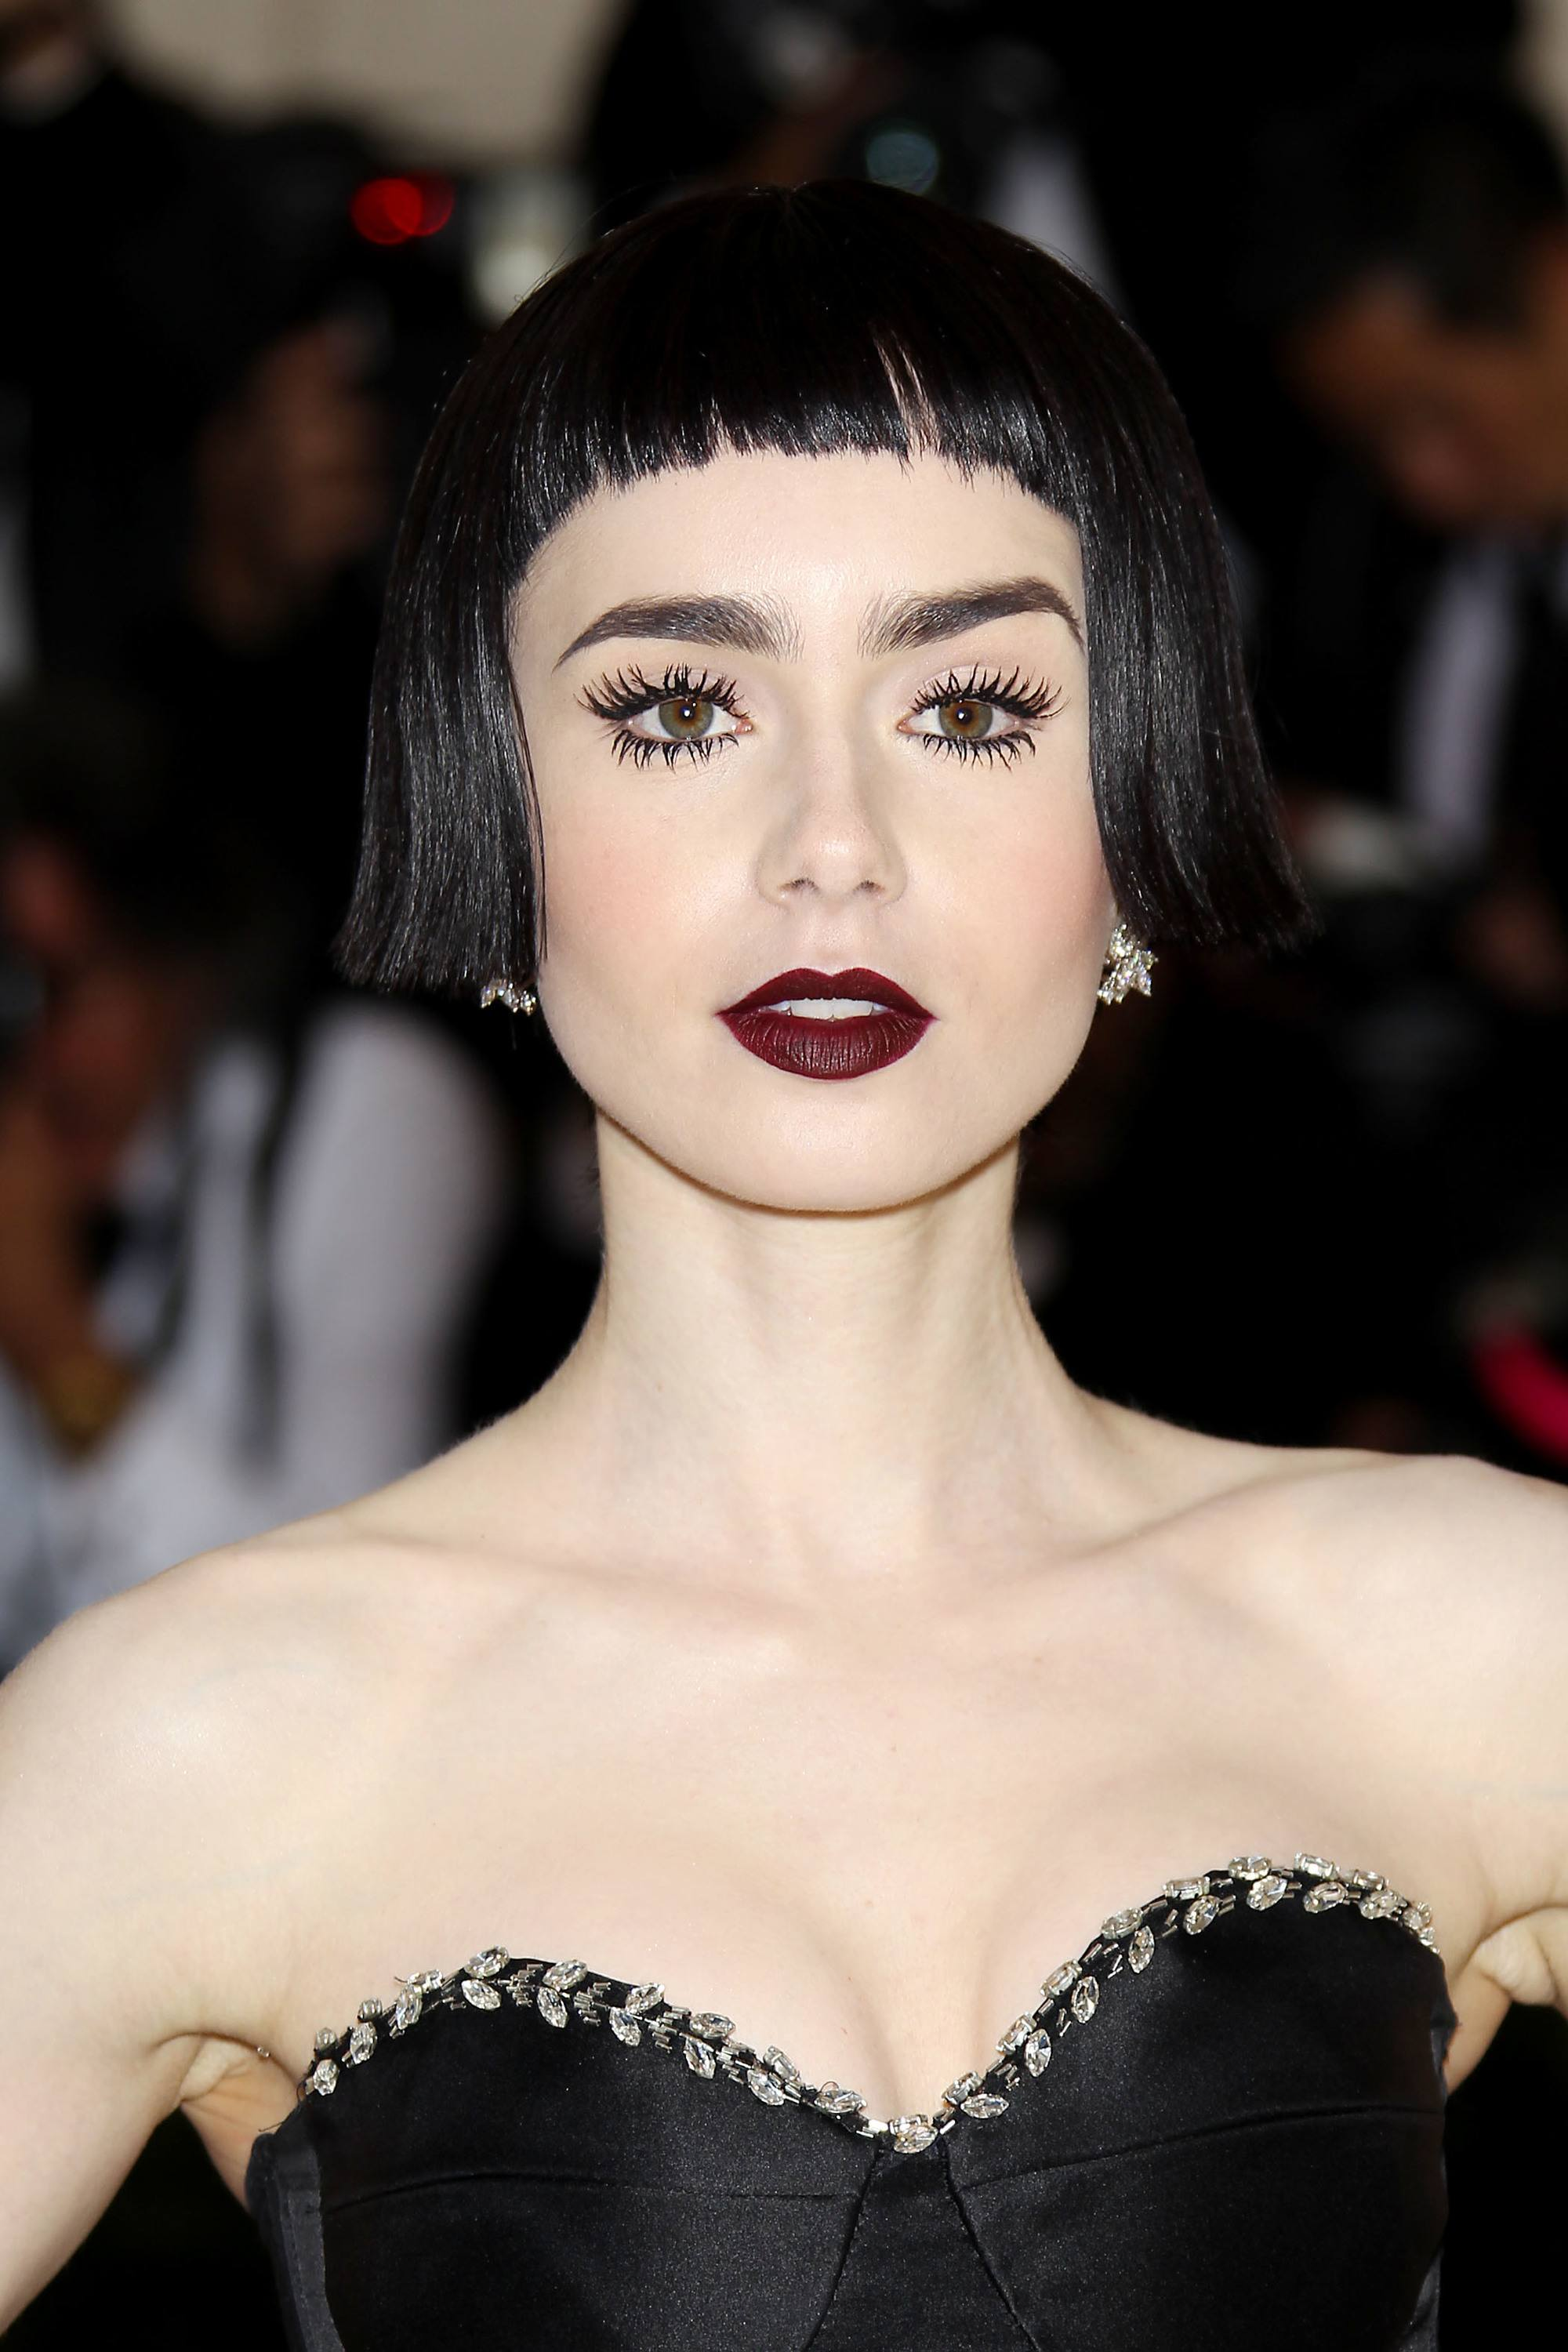 met gala hair: lily collins with betty boop inspired hair cut and black dress at met gala